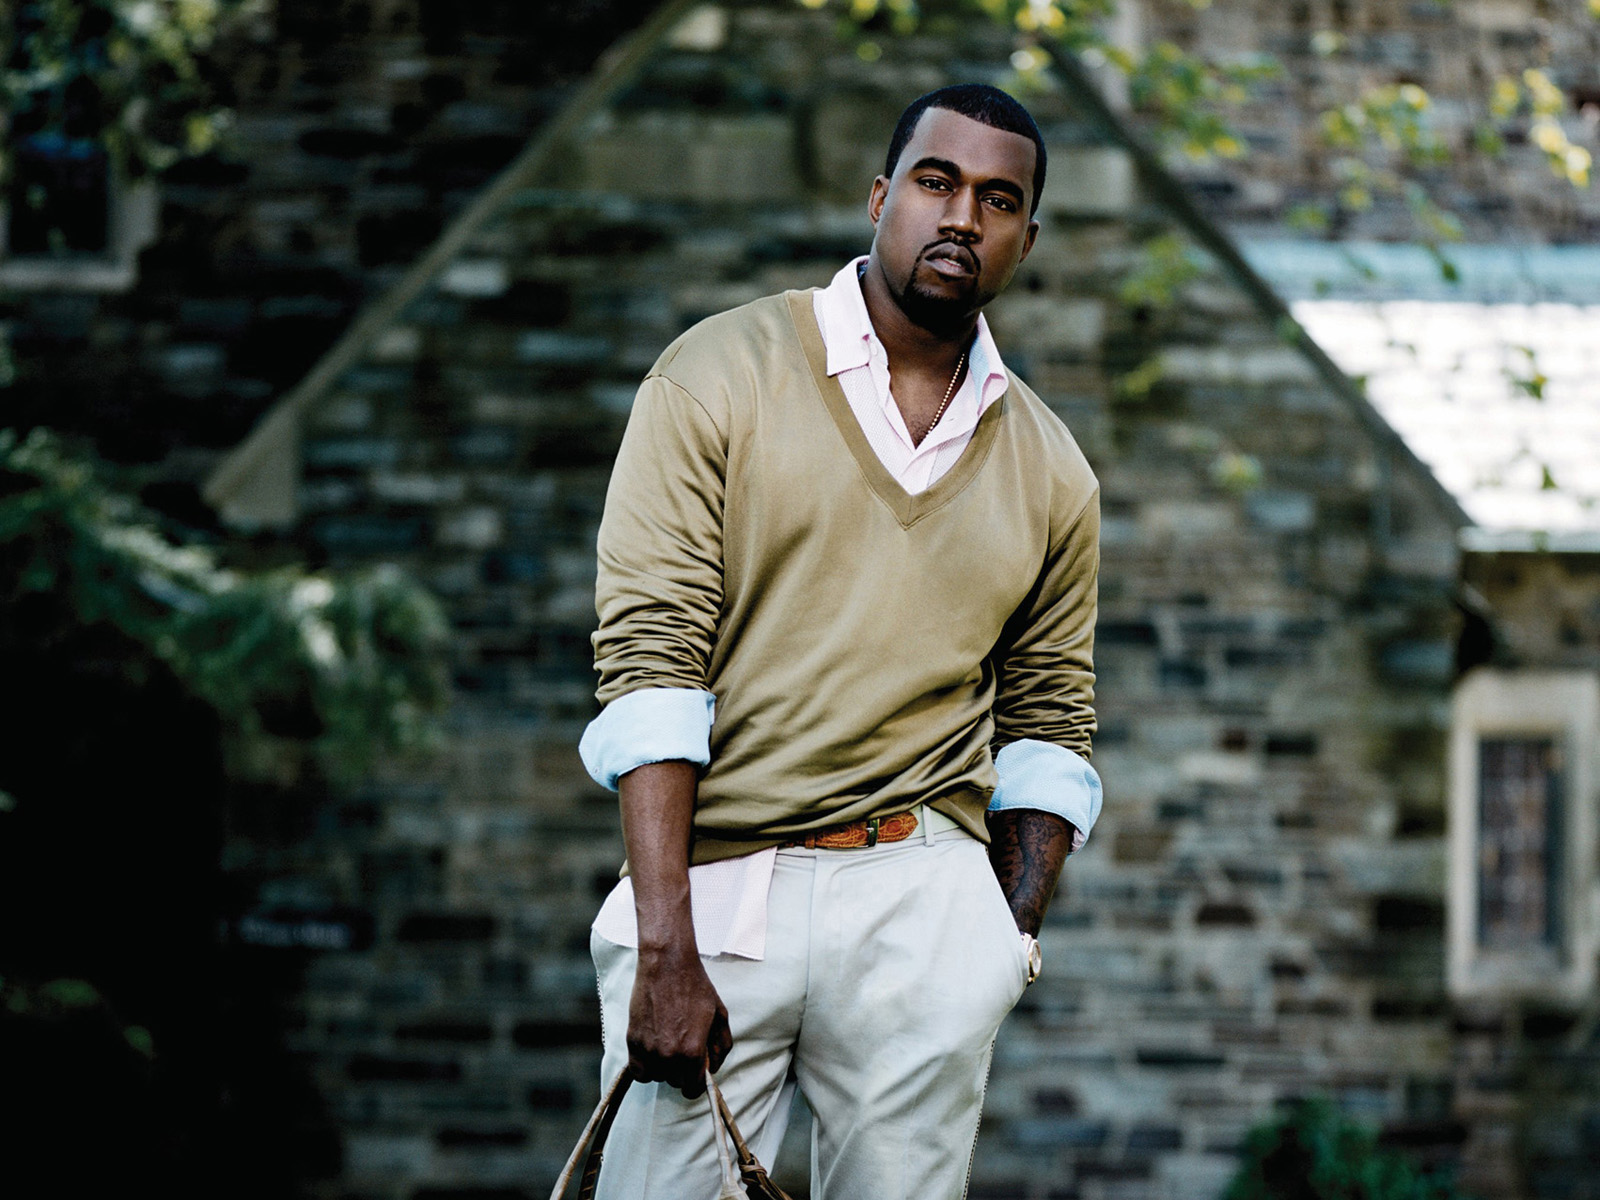 Kanye West Wallpaper Hd Kanye west 1080p 257 views 1600x1200